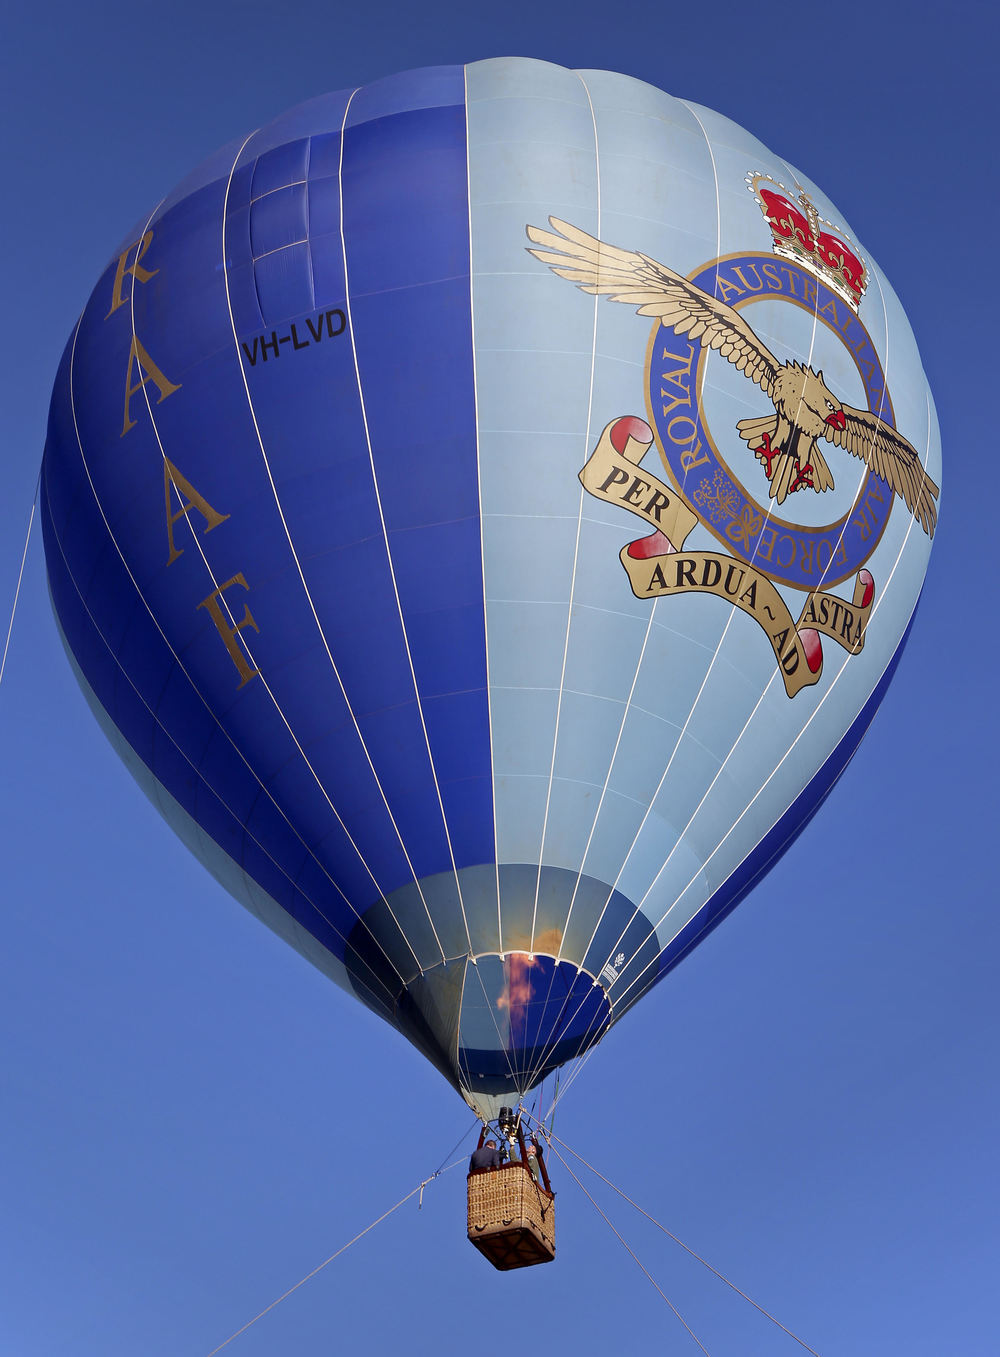 The Royal Australian Air Force Balloon is currently on tour and scheduled to 'land' in Greater Geraldton.